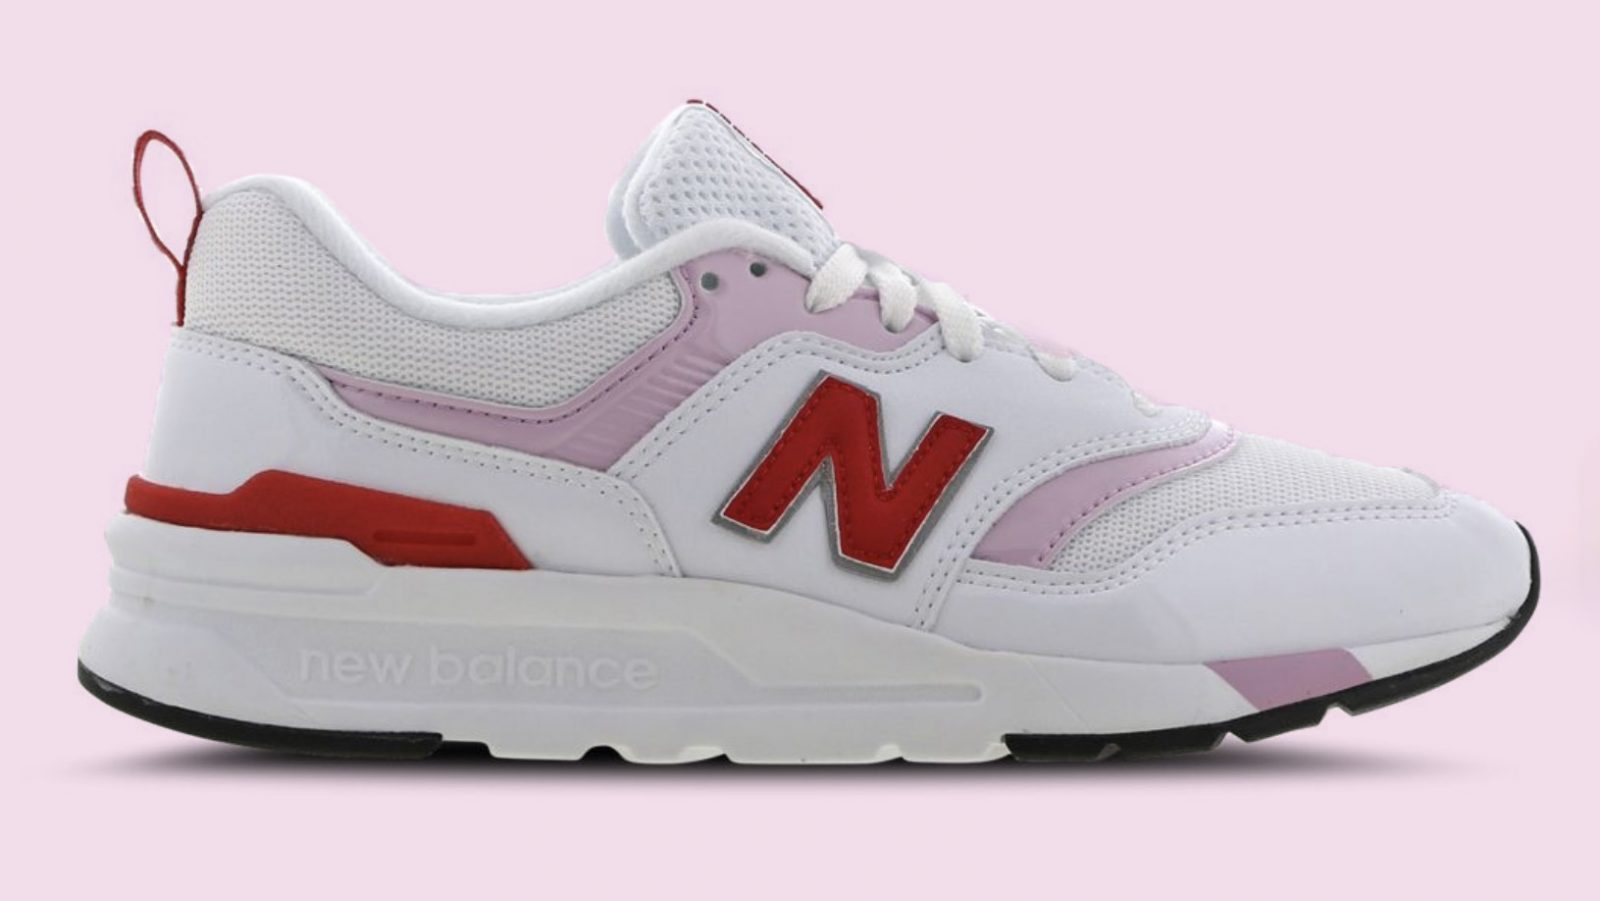 New Balance W997 White Pink Red Feature